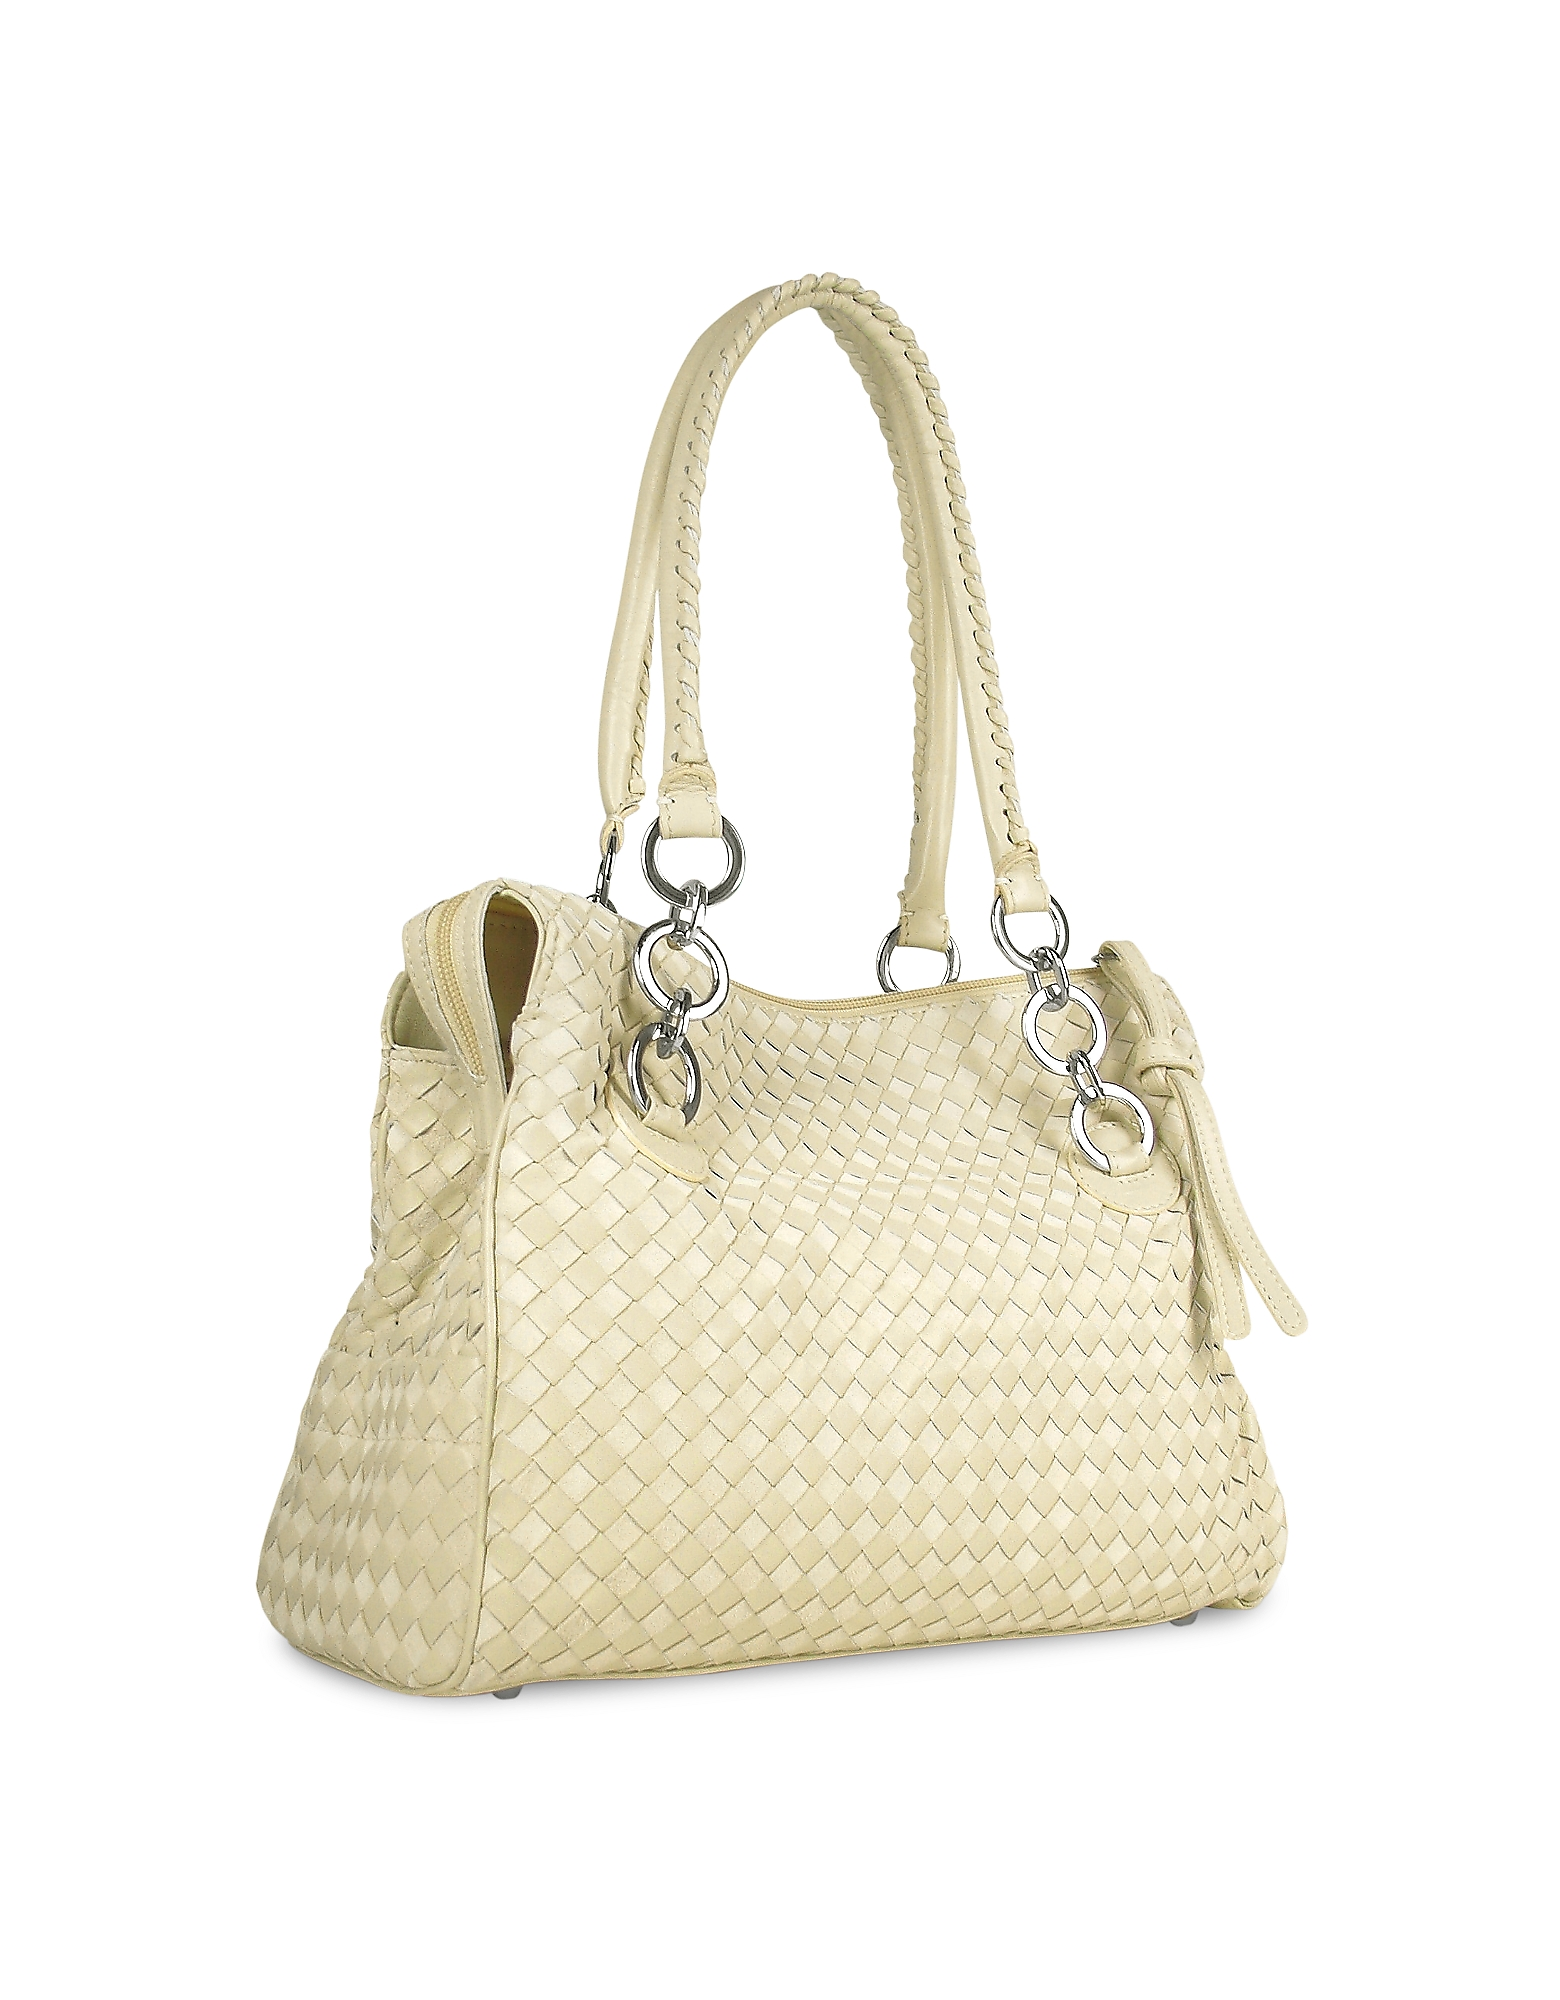 Fontanelli Handbags, Ivory Woven Italian Suede & Leather Satchel Bag